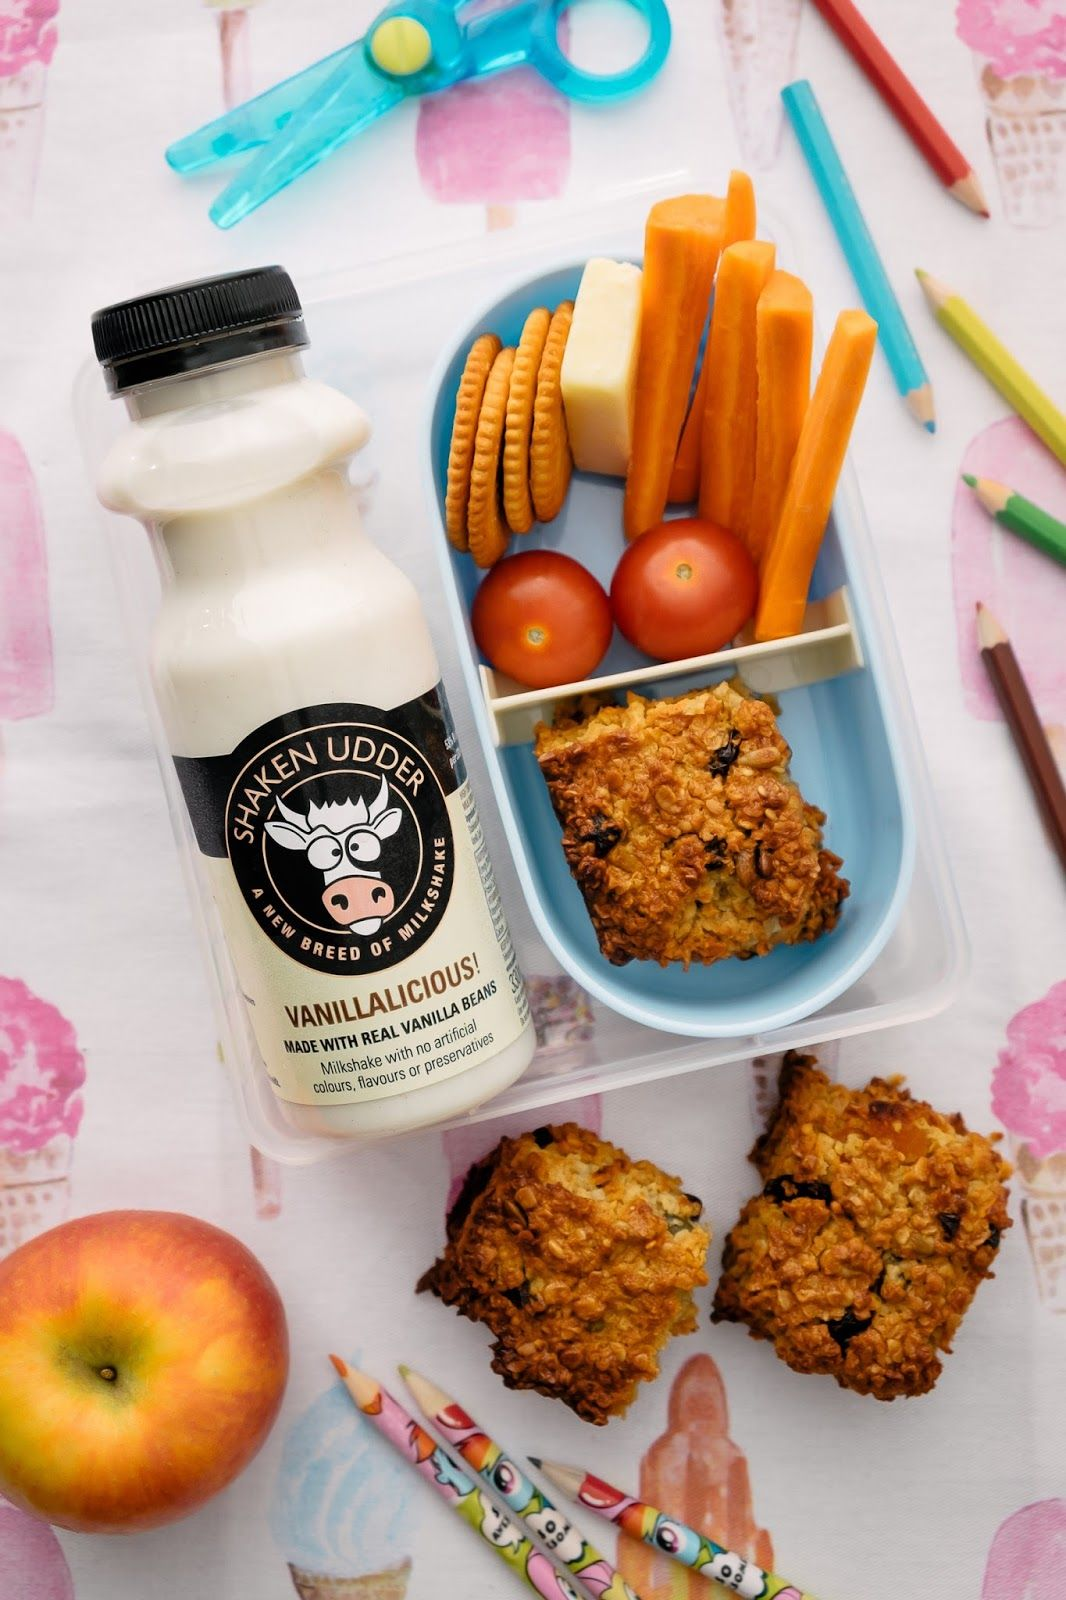 I Wasn't Expecting That...: Vanillalicious Protein-Packed Flapjack...